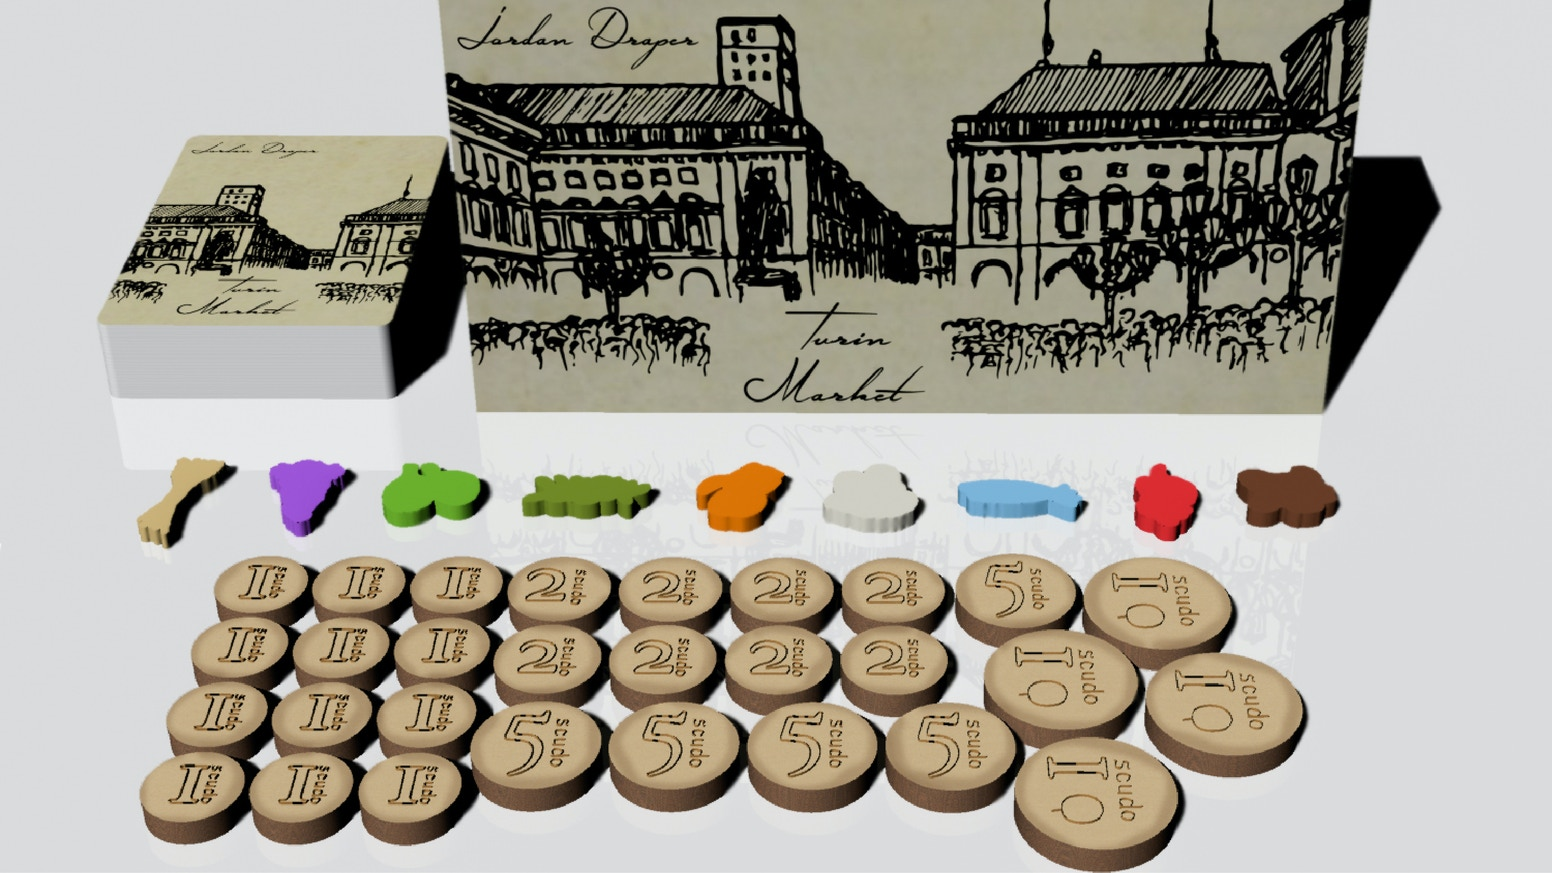 Come join the markets of 18th century Turin in an auction set collection game for 2-5 players with loans, bluffing, and custom pieces!